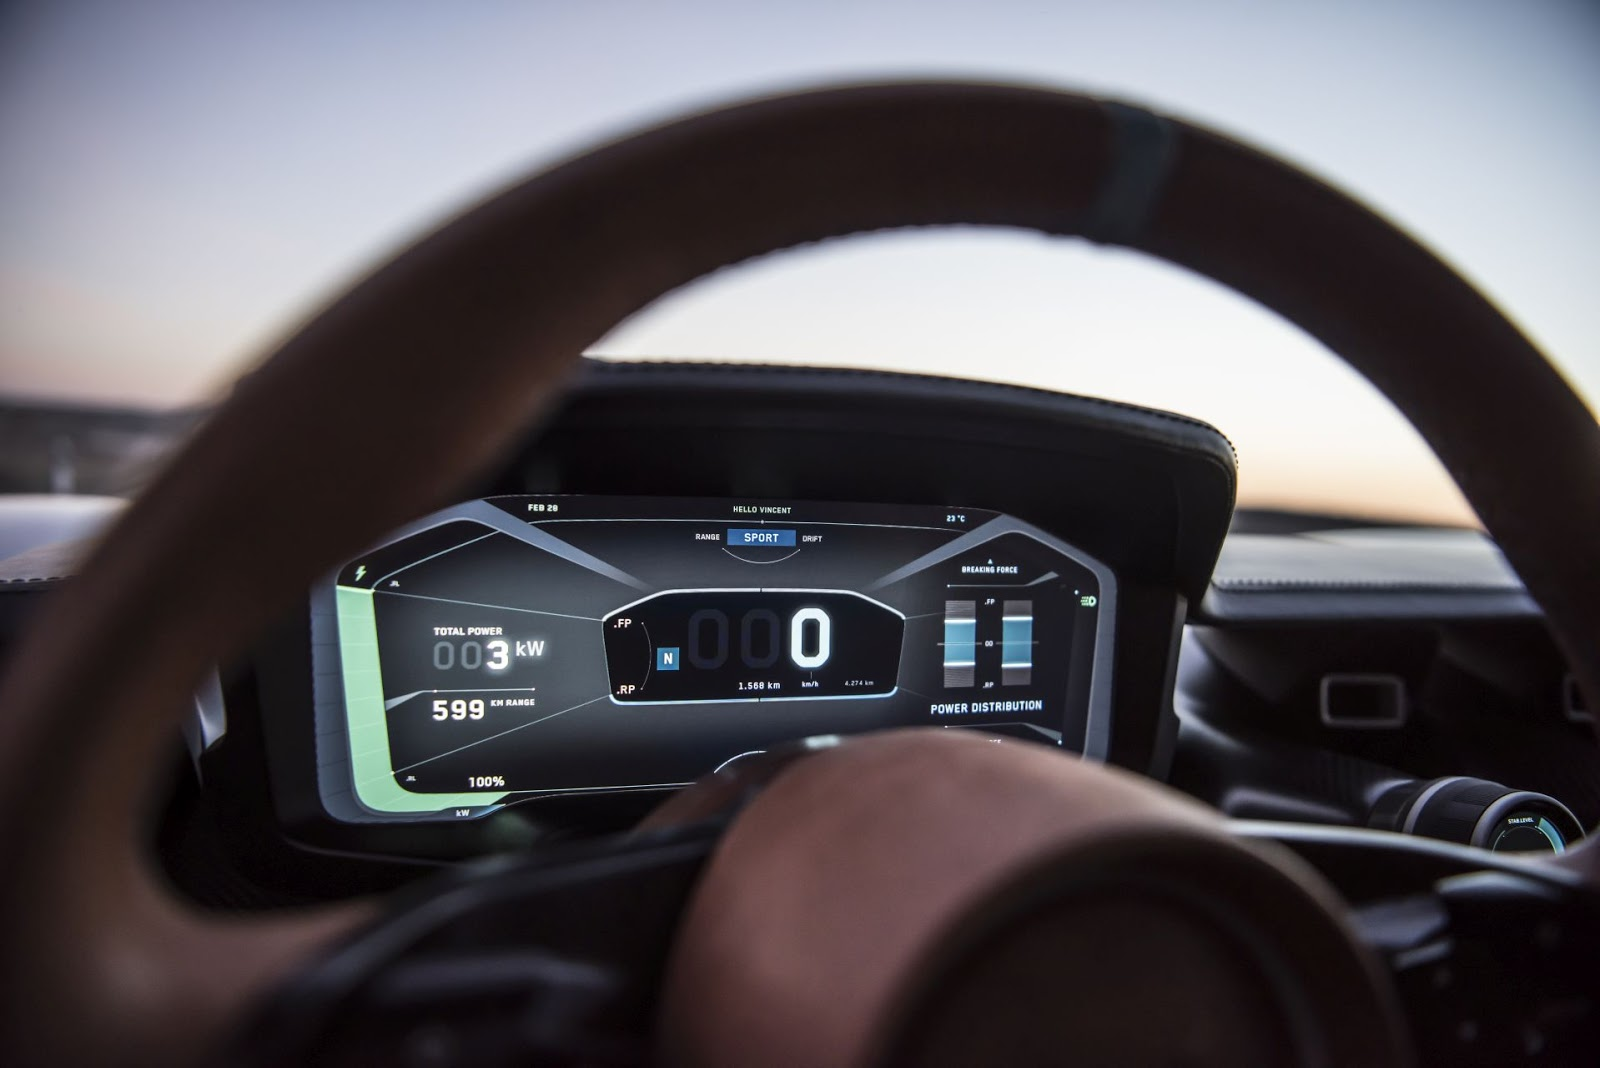 c two cluster gui overview Rimac C Two. Η νέα φυλή στα hypercars, έρχεται με 1900 ίππους. C Two, Electric cars, hypercar, Rimac, zblog